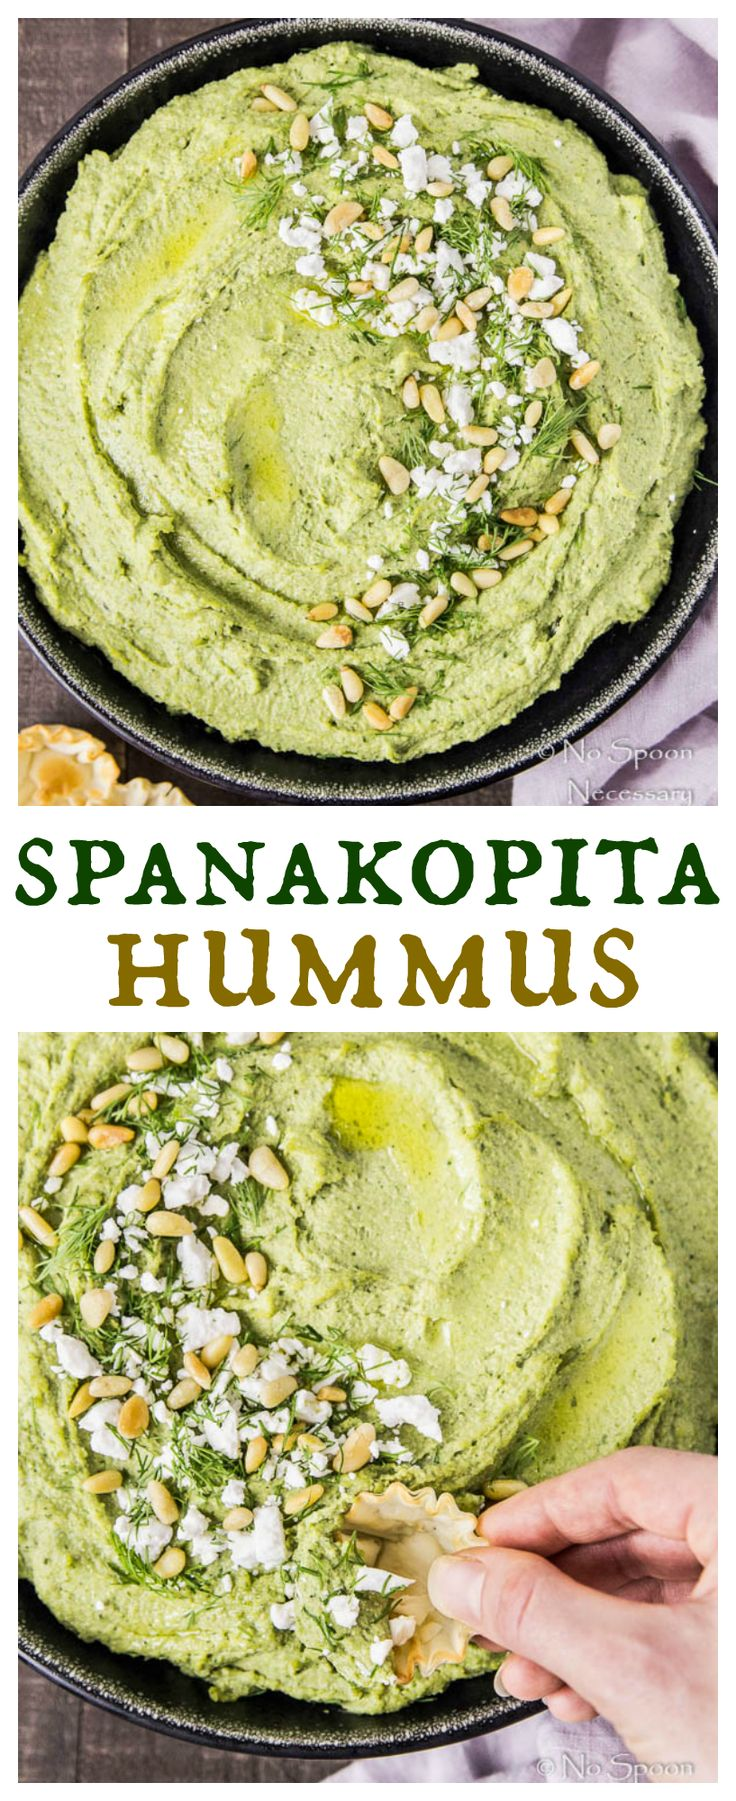 Spanakopita Hummus  --> All The Traditional Flavors of Greek Spinach & Feta Pie Turned Into A Healthy, Creamy-Dreamy Dip.